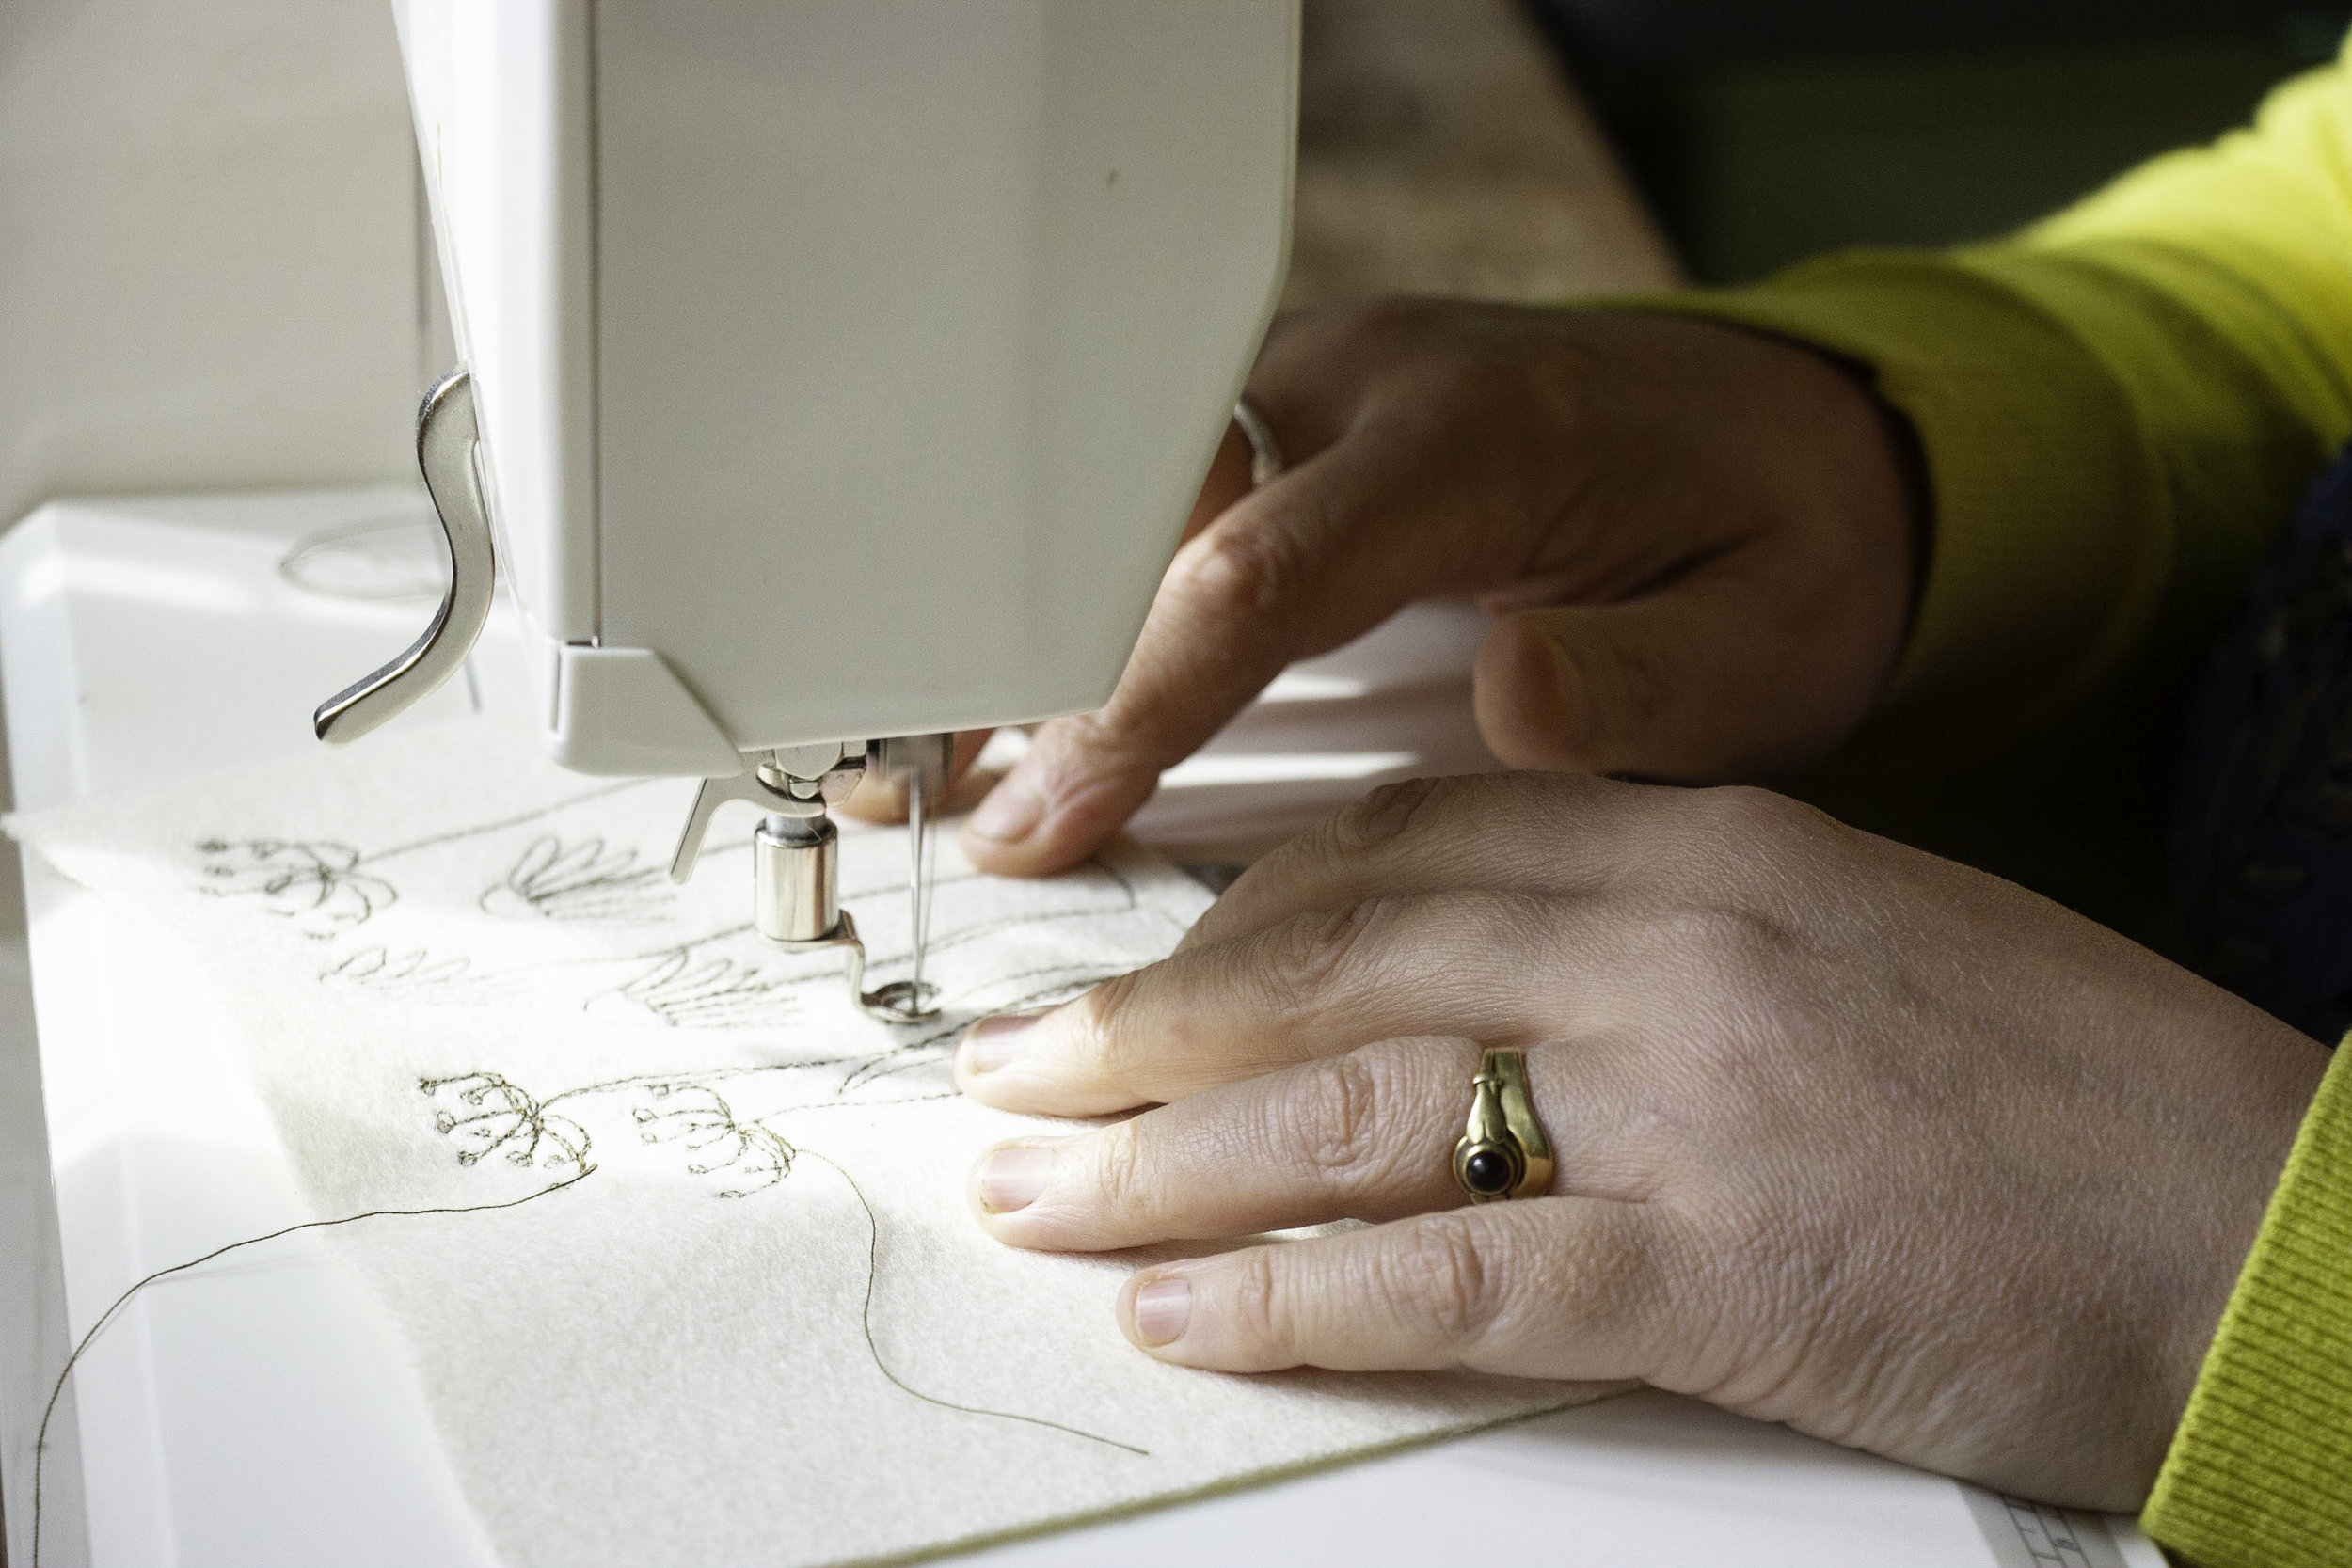 hands sewing.jpg